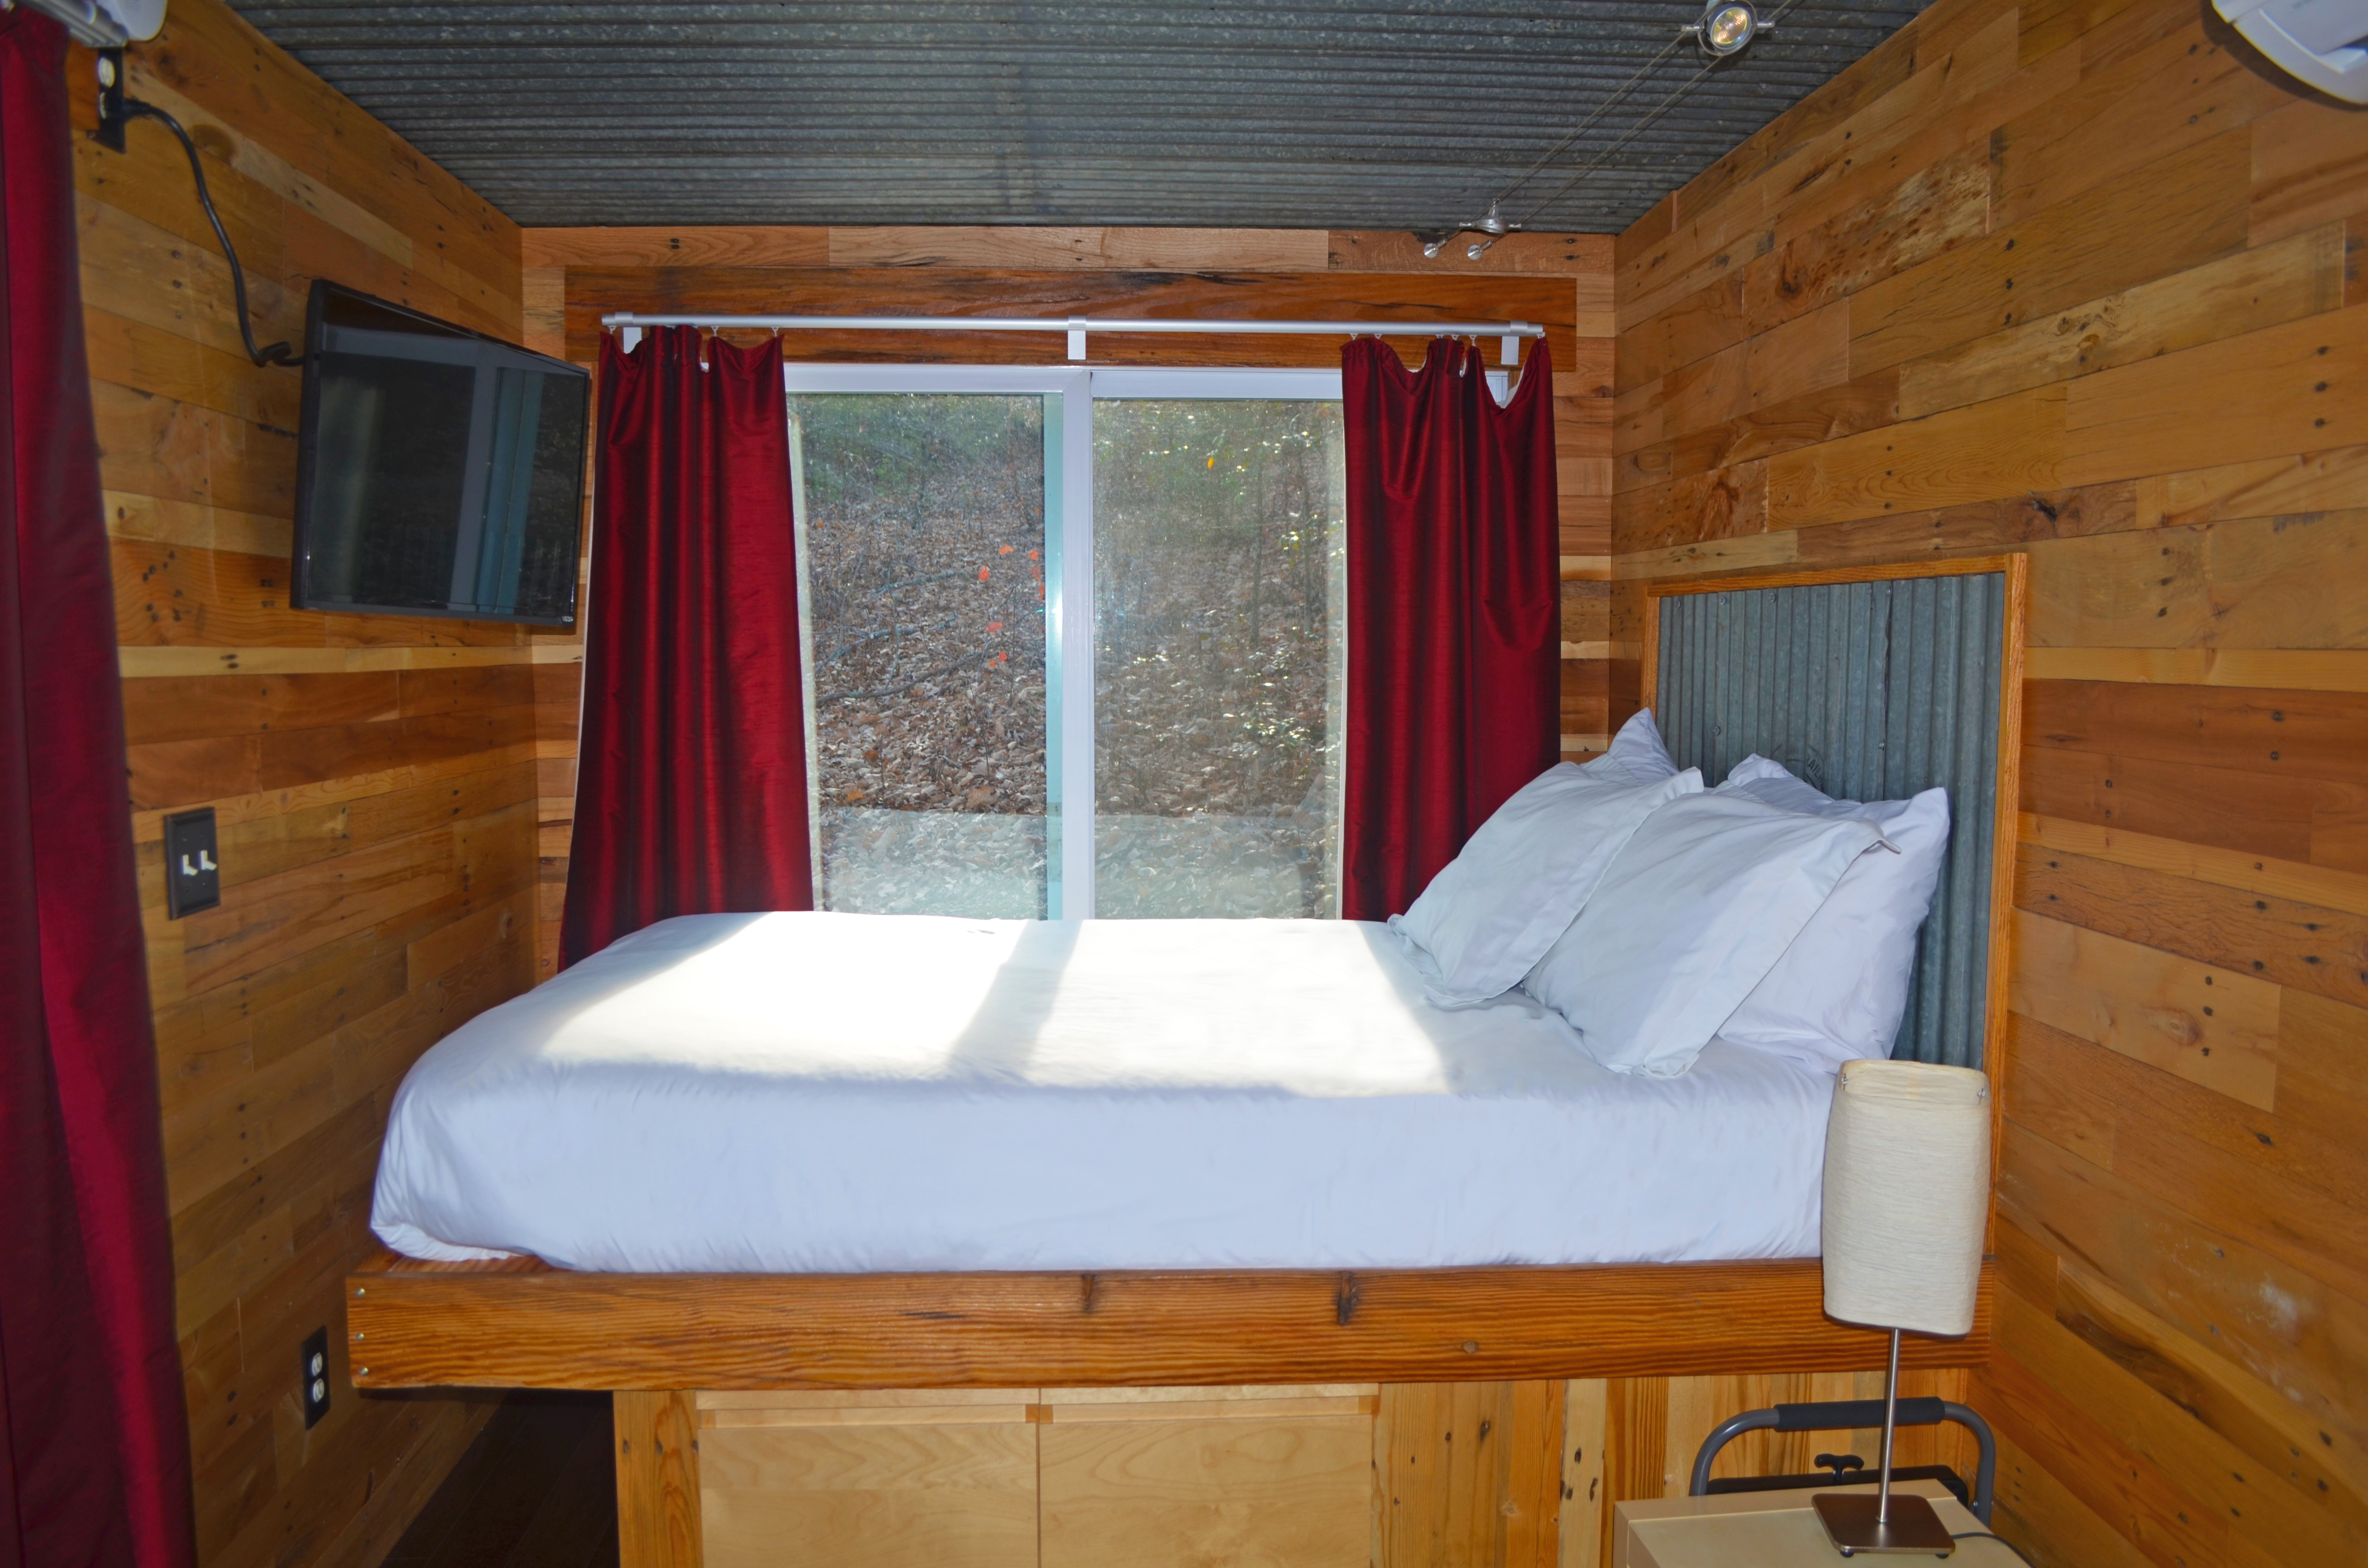 in s roscommon bearadise cabin dahlonega d hideawayhavens ga our havens cabins